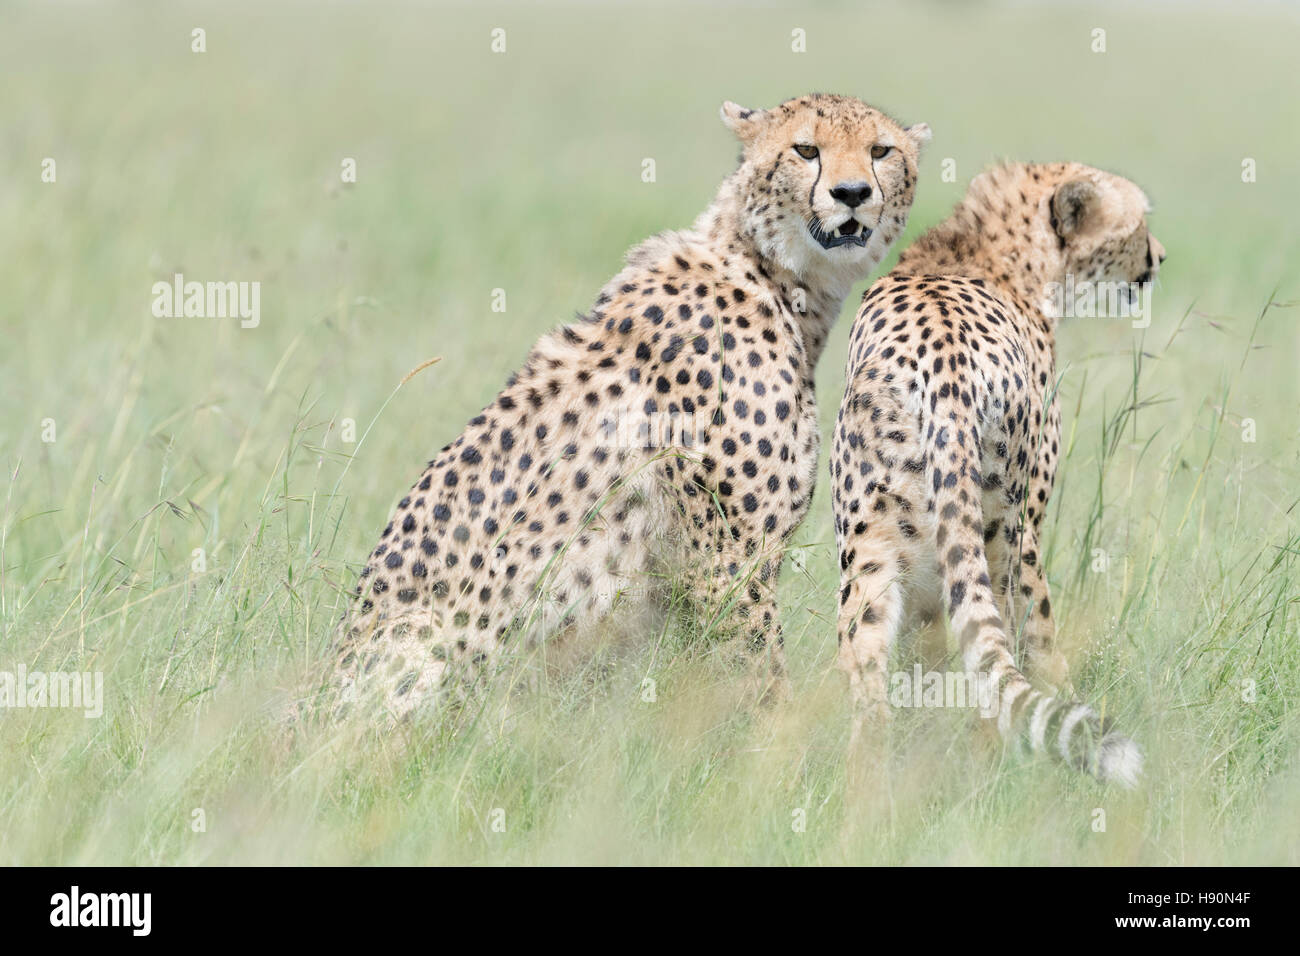 Deux Cheetah (Acinonix jubatus) à l'affût à Savanna, Maasai Mara National Reserve, Kenya Photo Stock